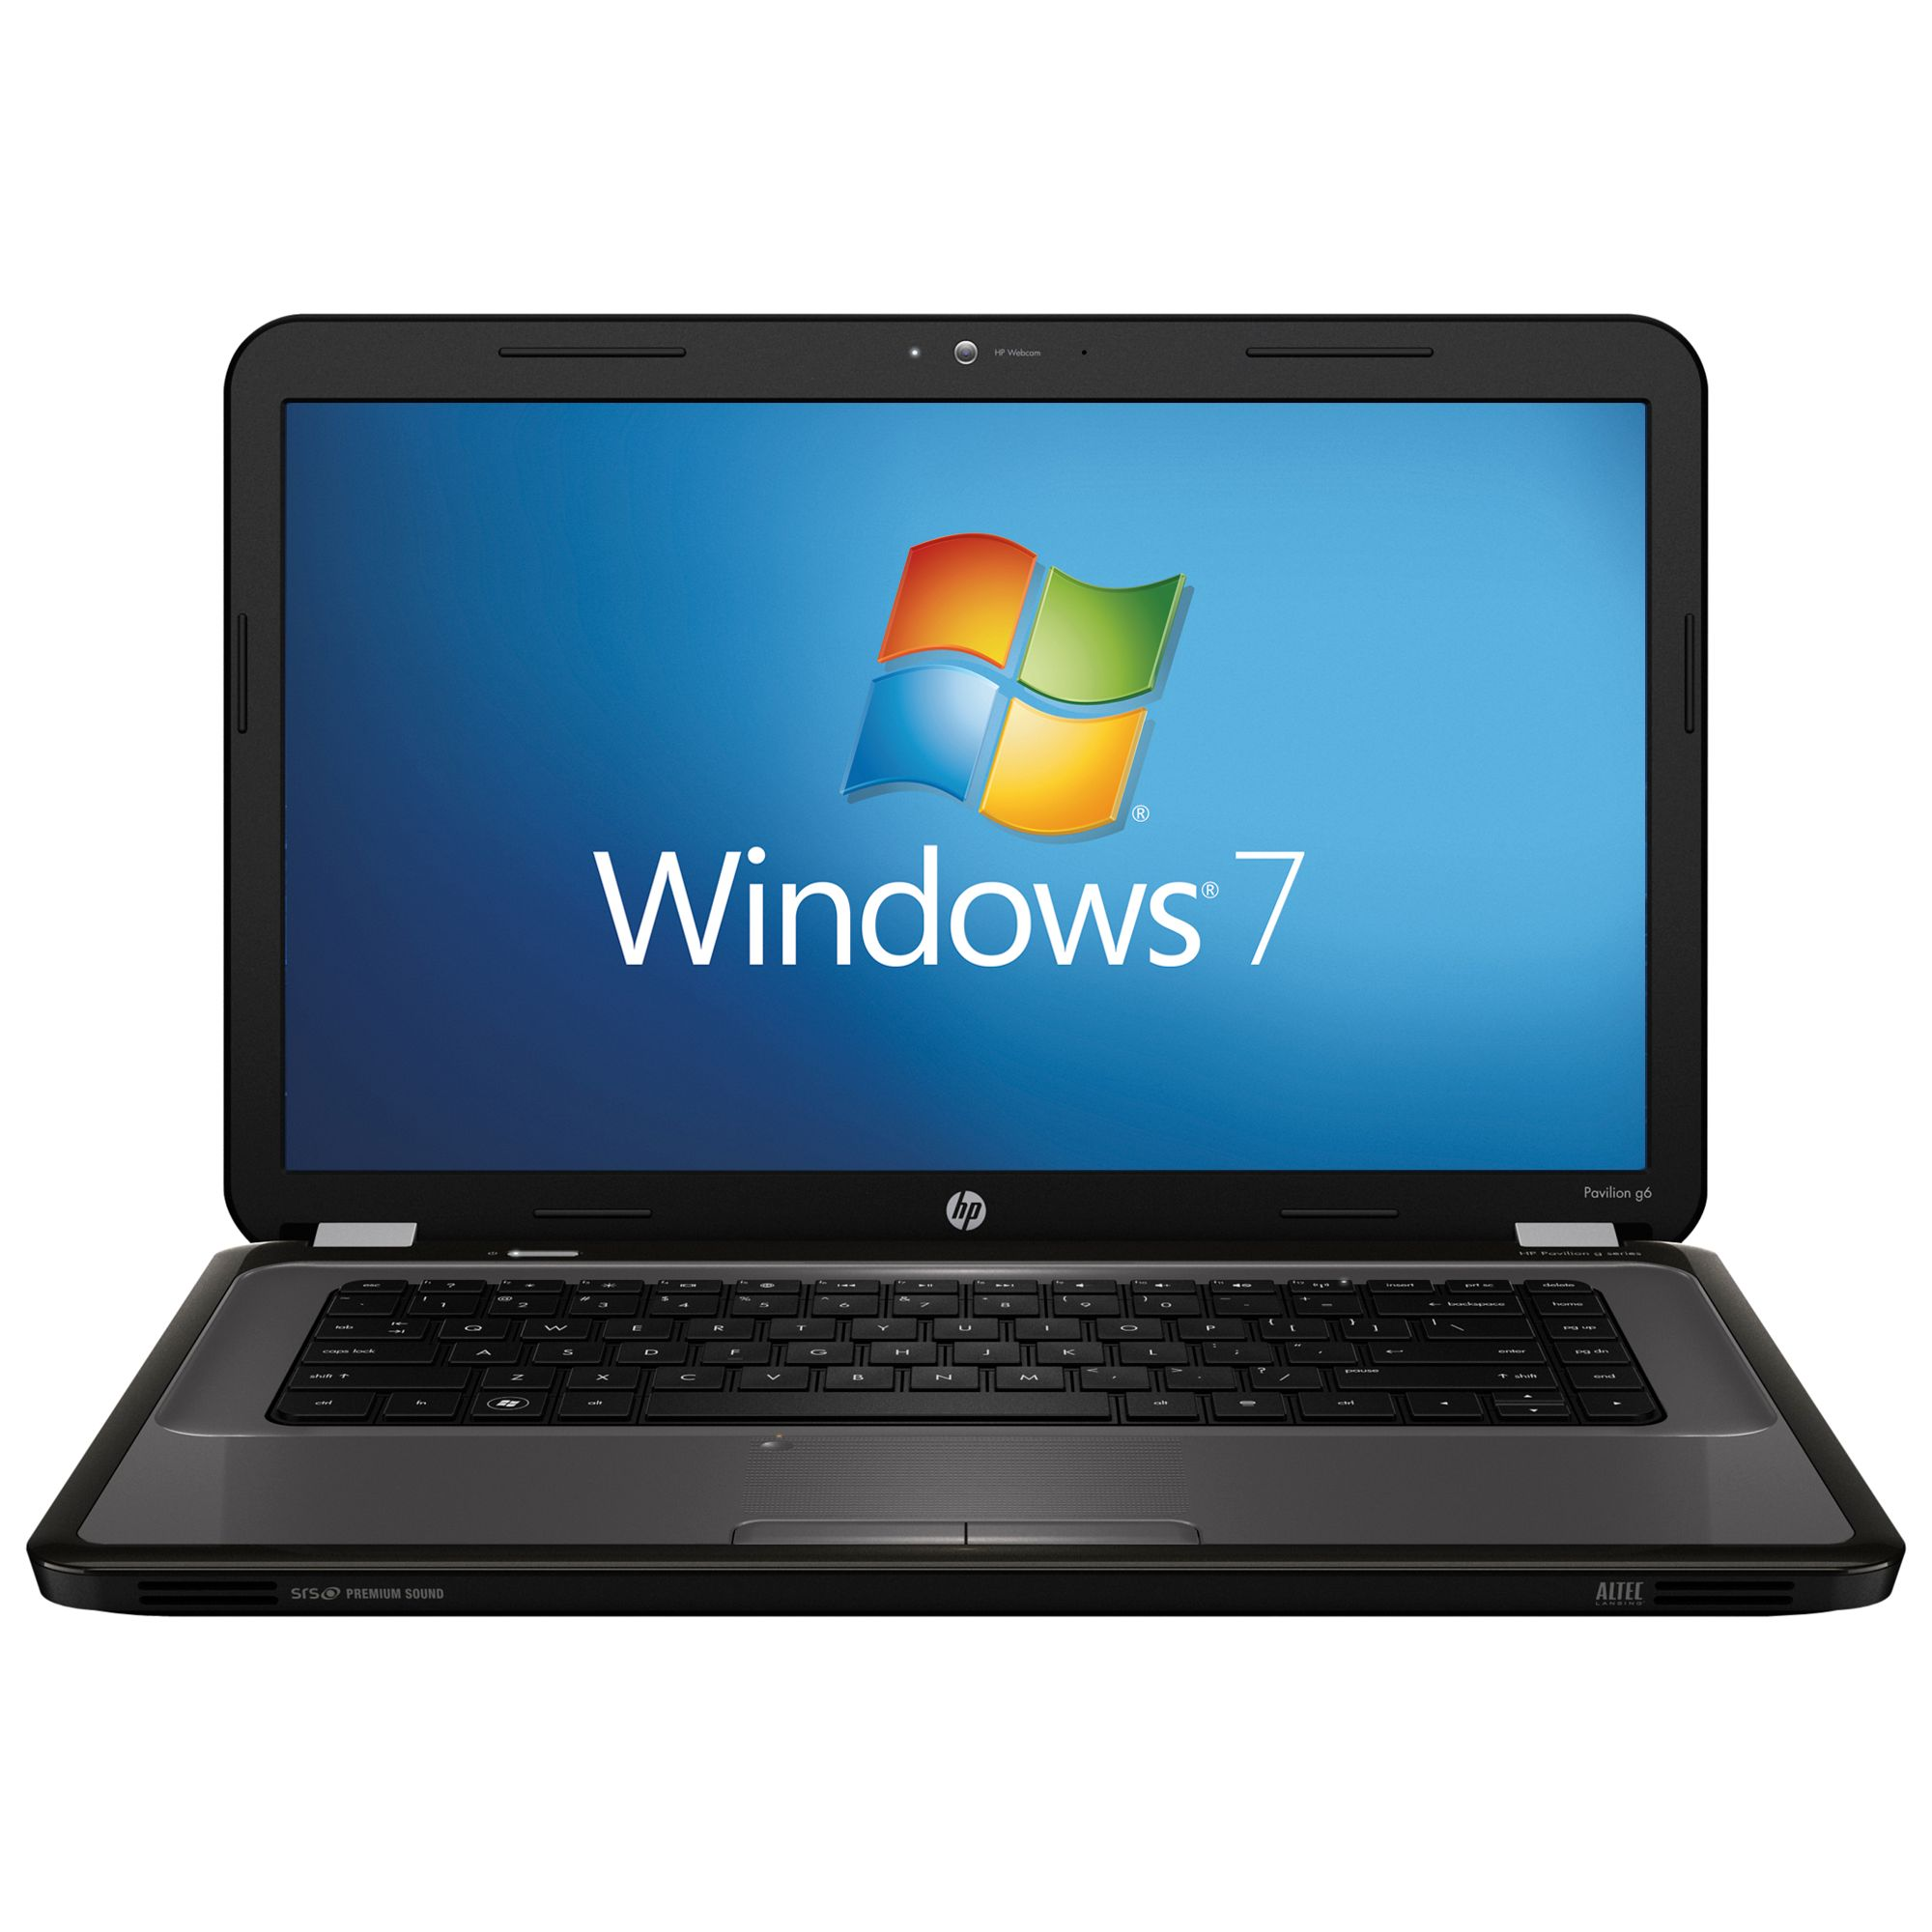 "Hp Pavilion G6-1306 Laptop, Amd Vision Dual-core, 1.9ghz, 4gb Ram, 1tb With 15.6"" Display, Grey"